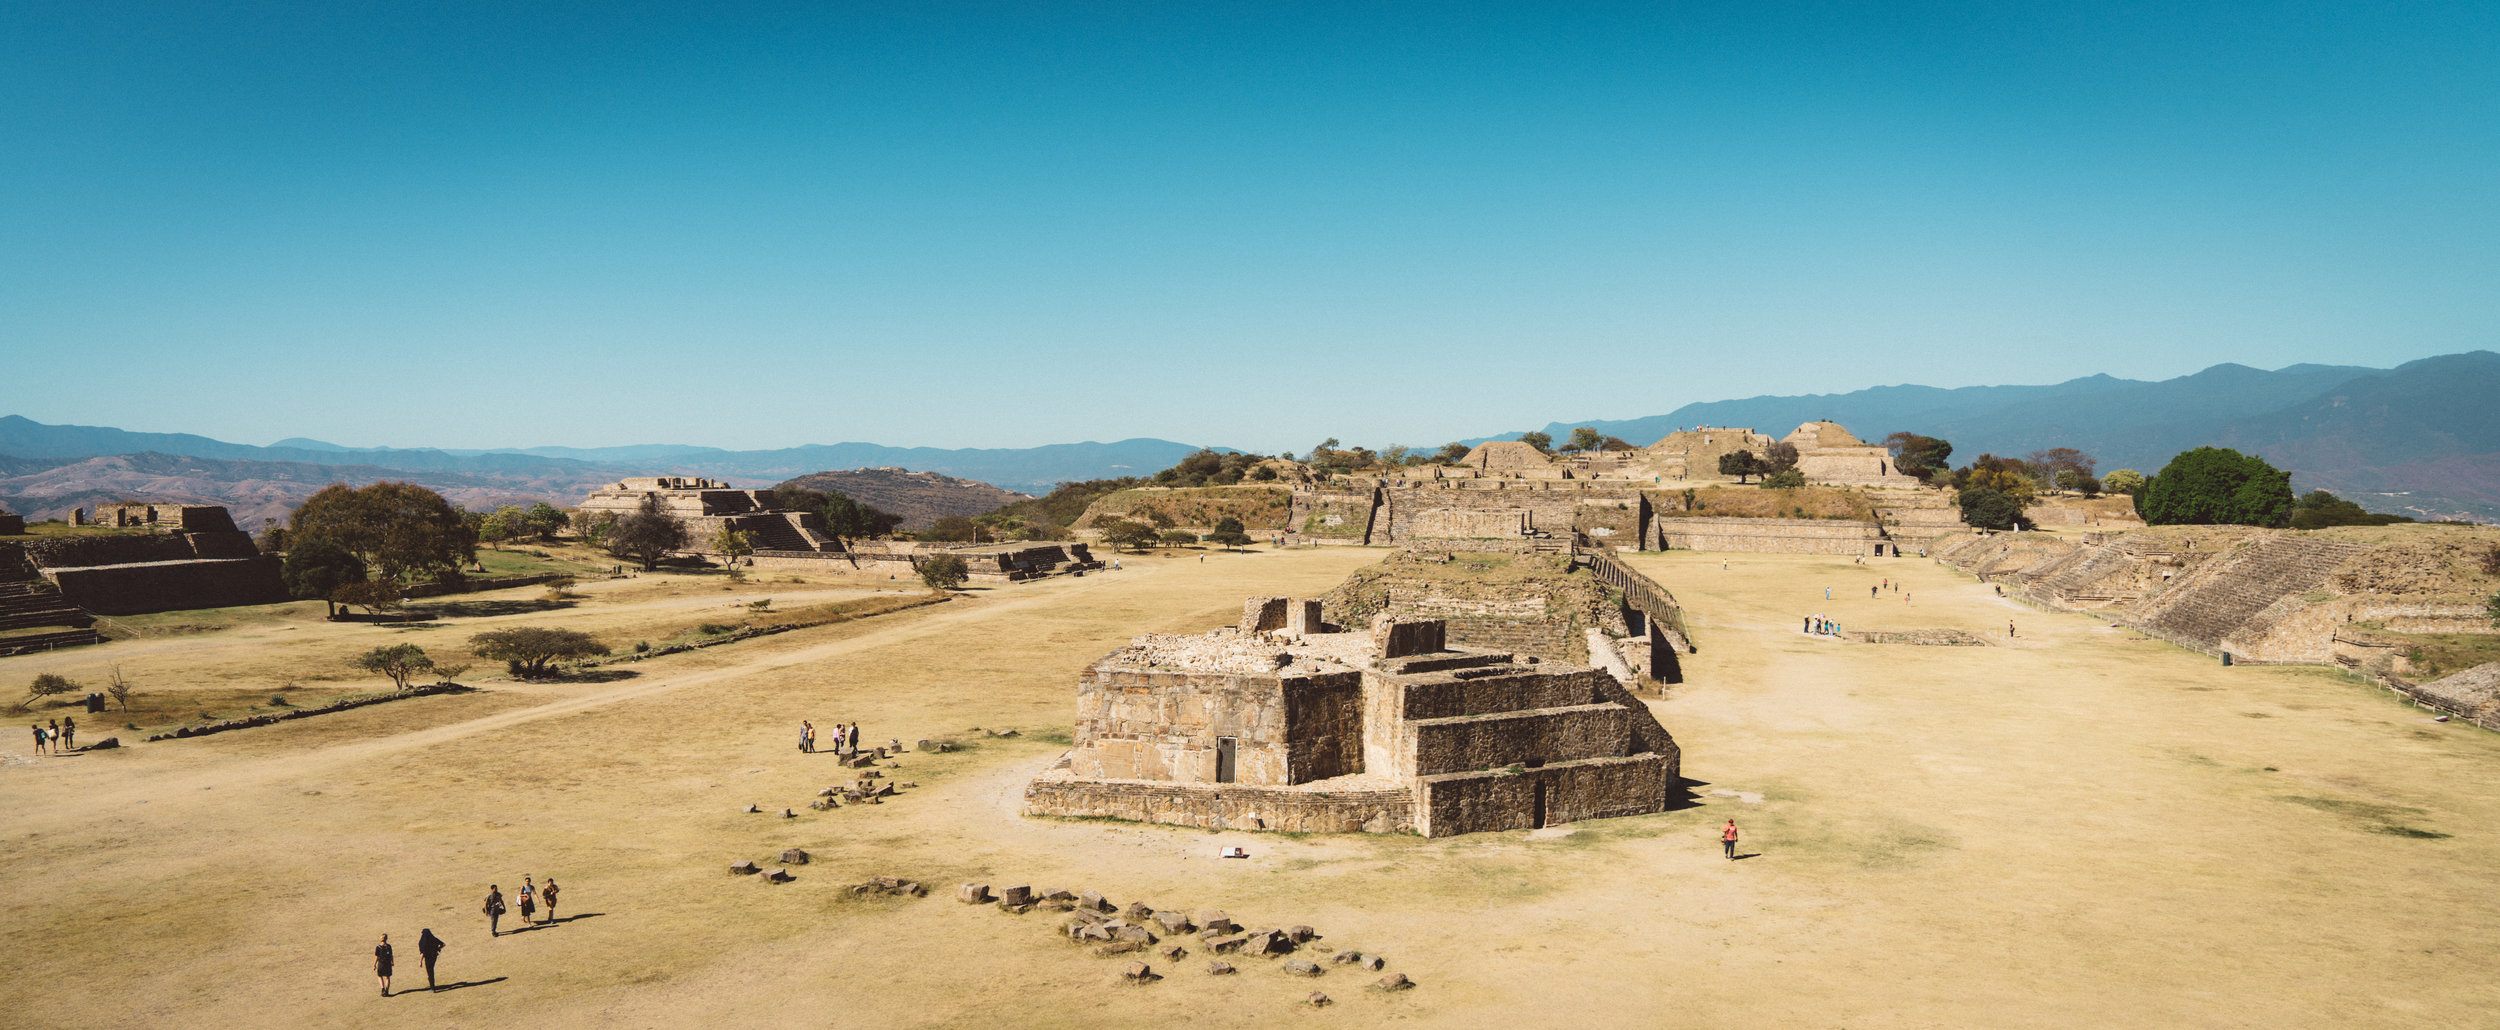 The Mayan ruins of Monte Albán